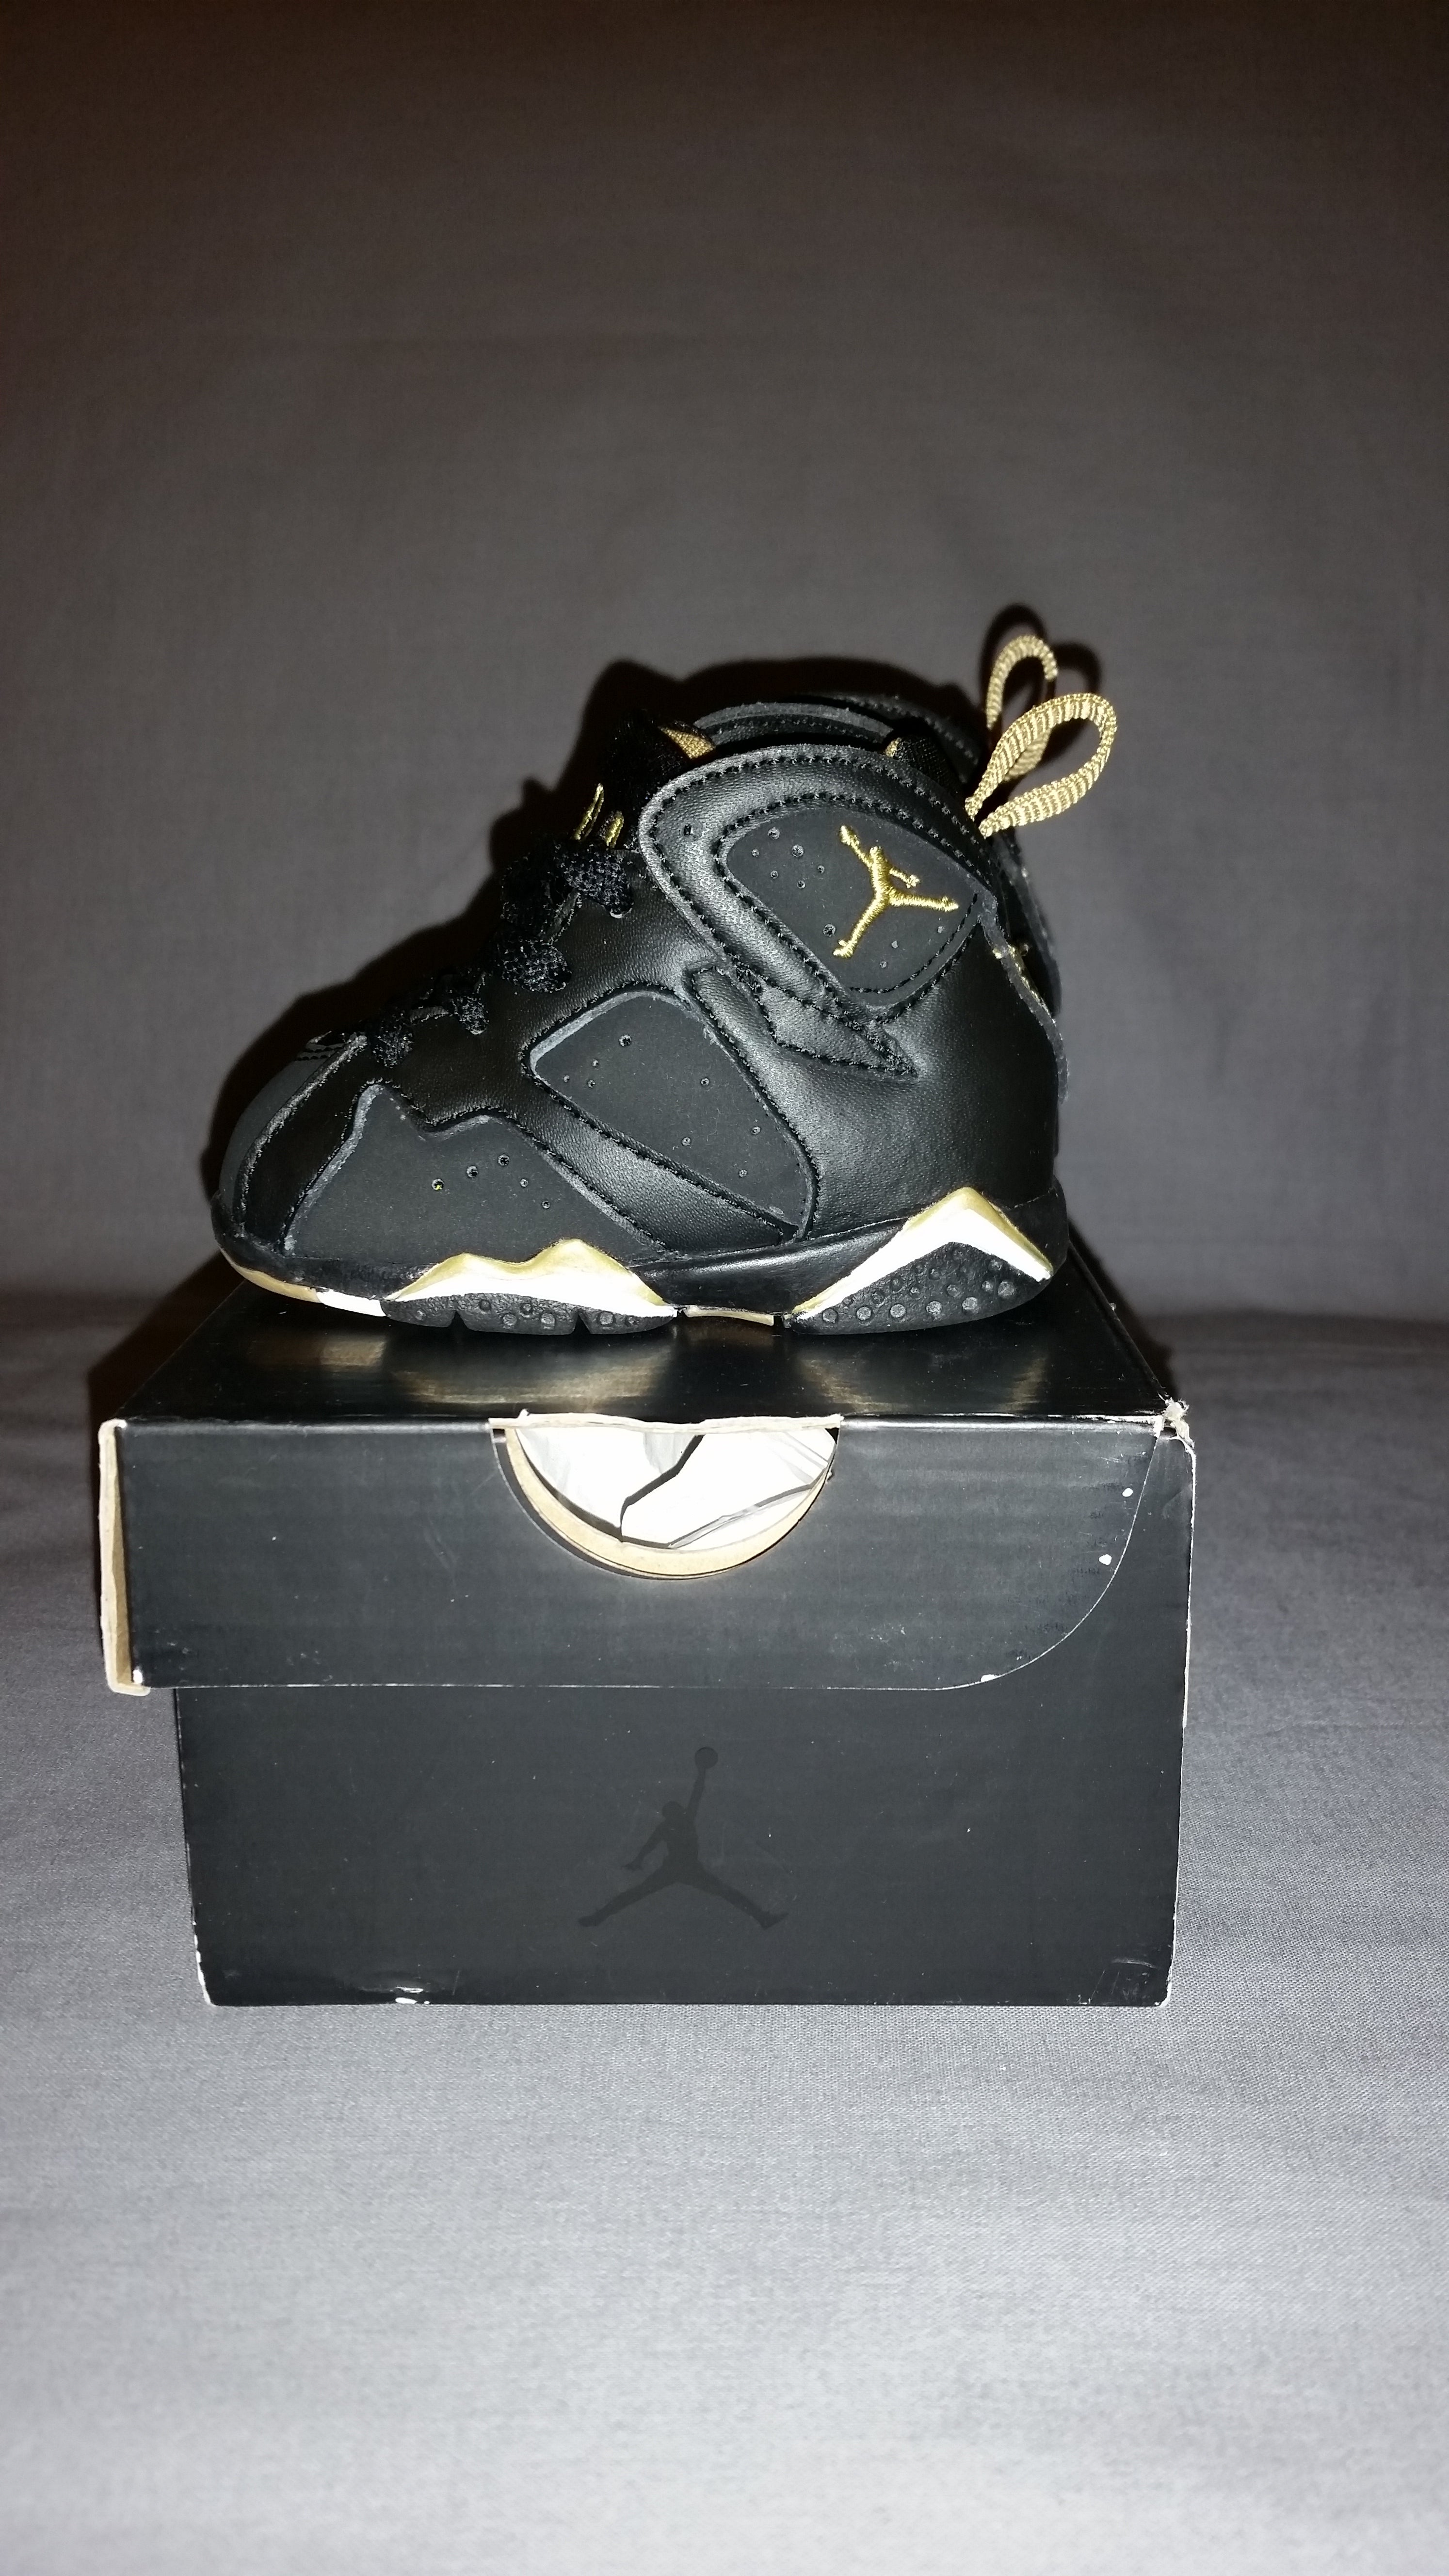 0839fbde0cbcf2 Brand new Nike Shox basketball shoes. air jordan gold medal pack for sale Nike  camo ...